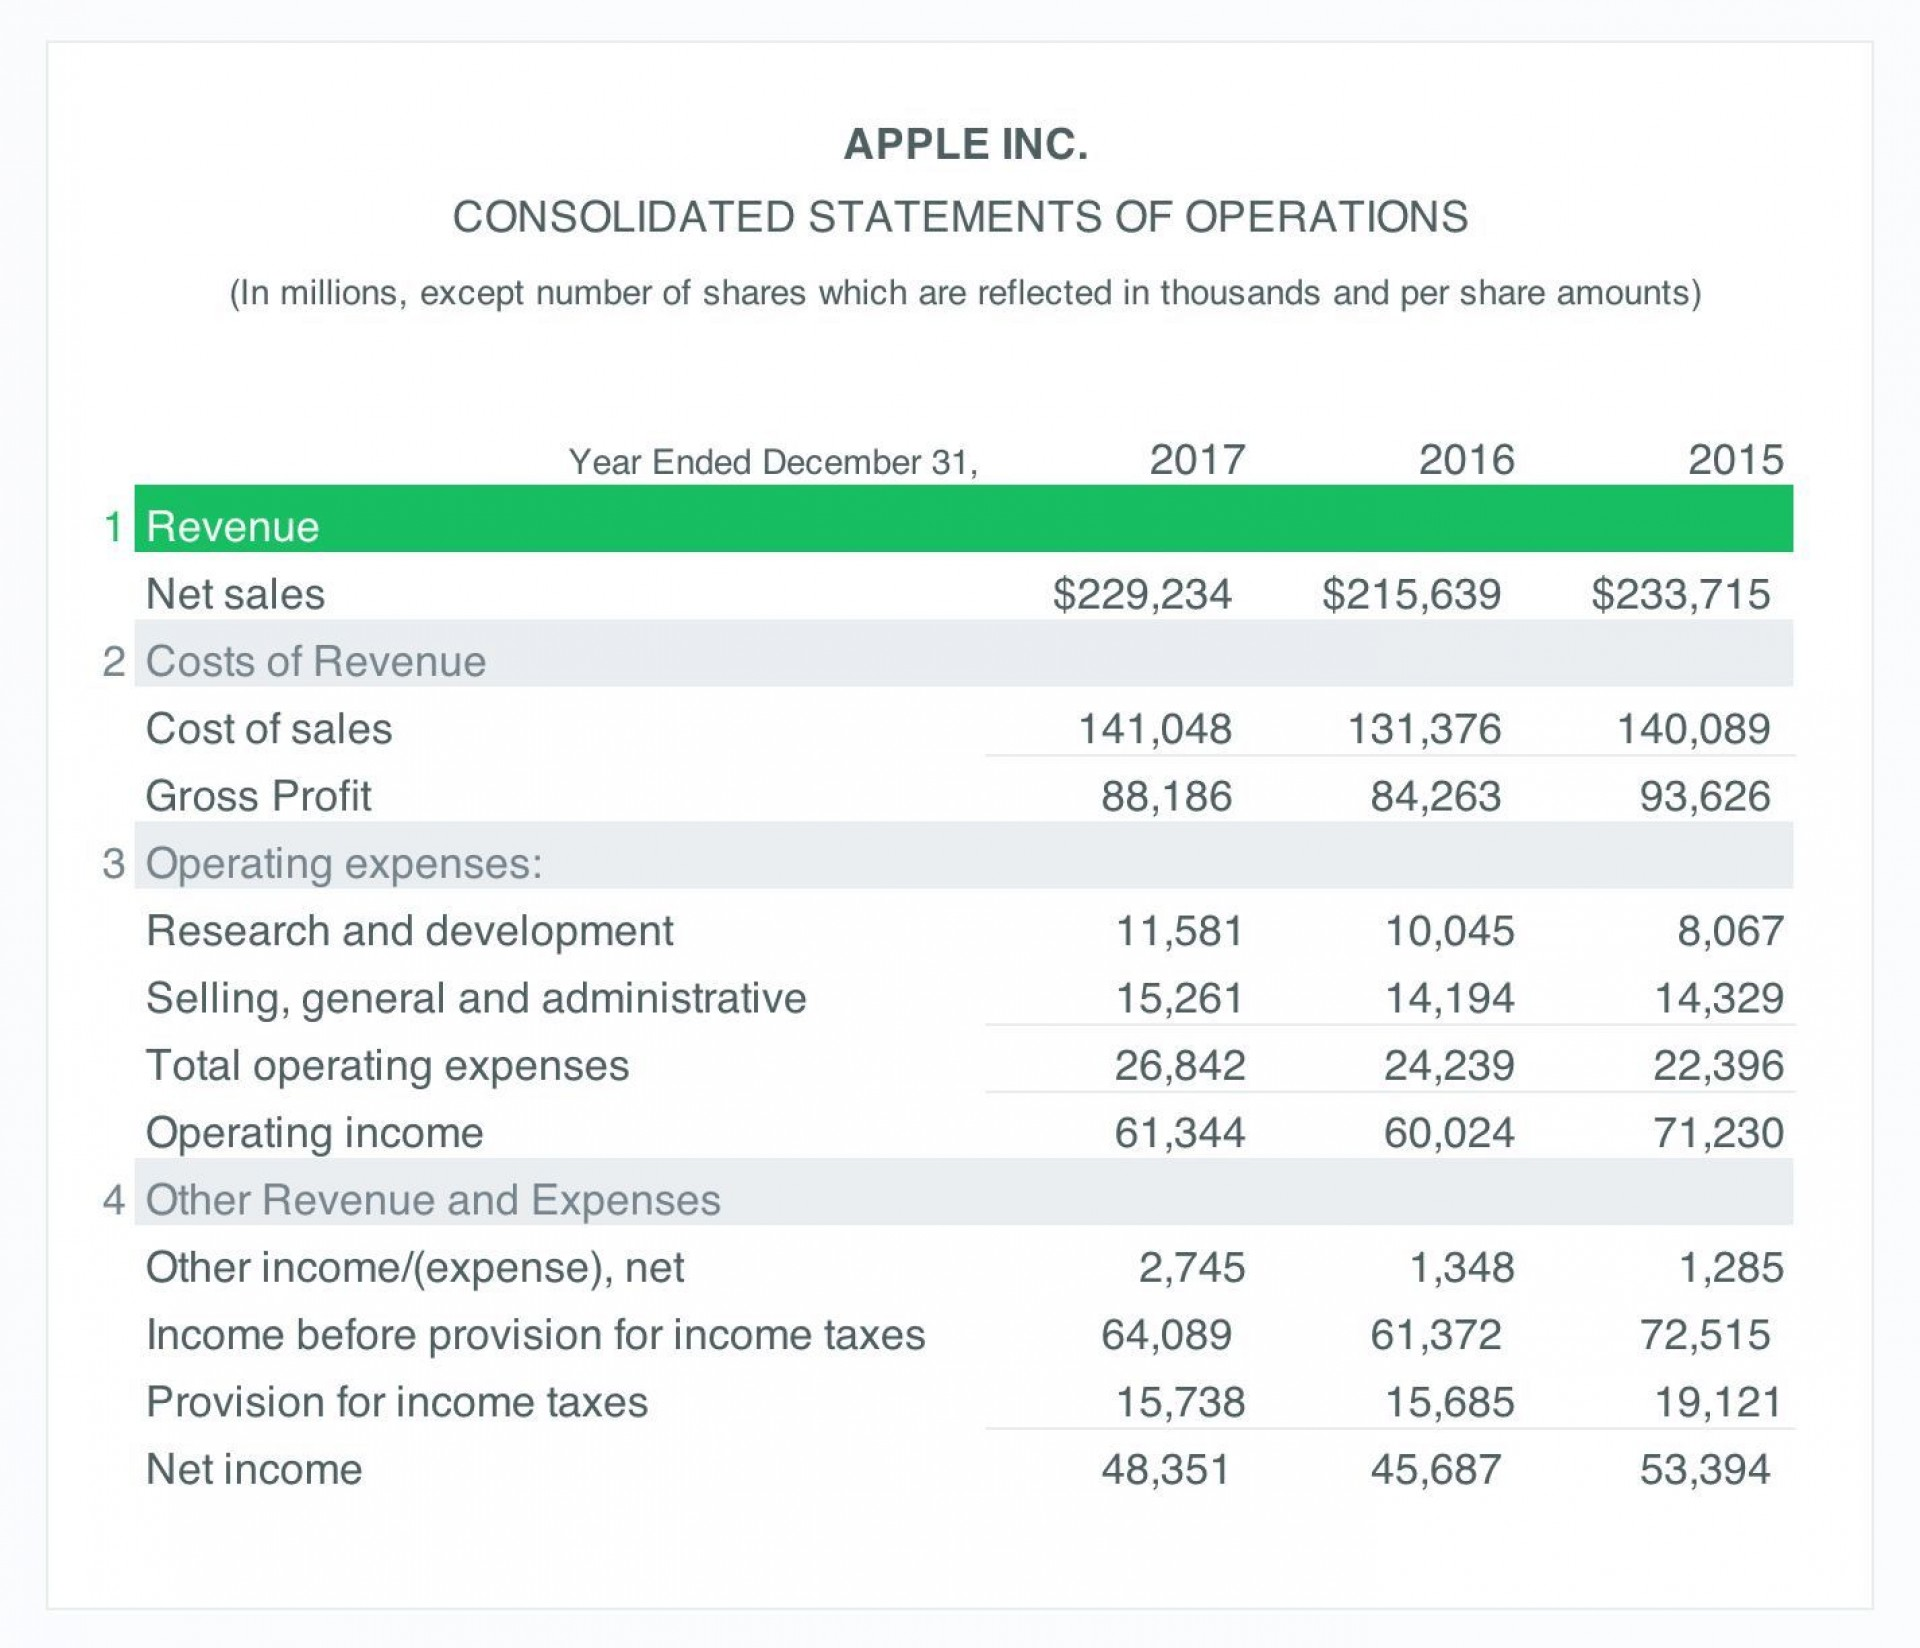 001 Magnificent Income Statement Format In Excel Download Image 1920